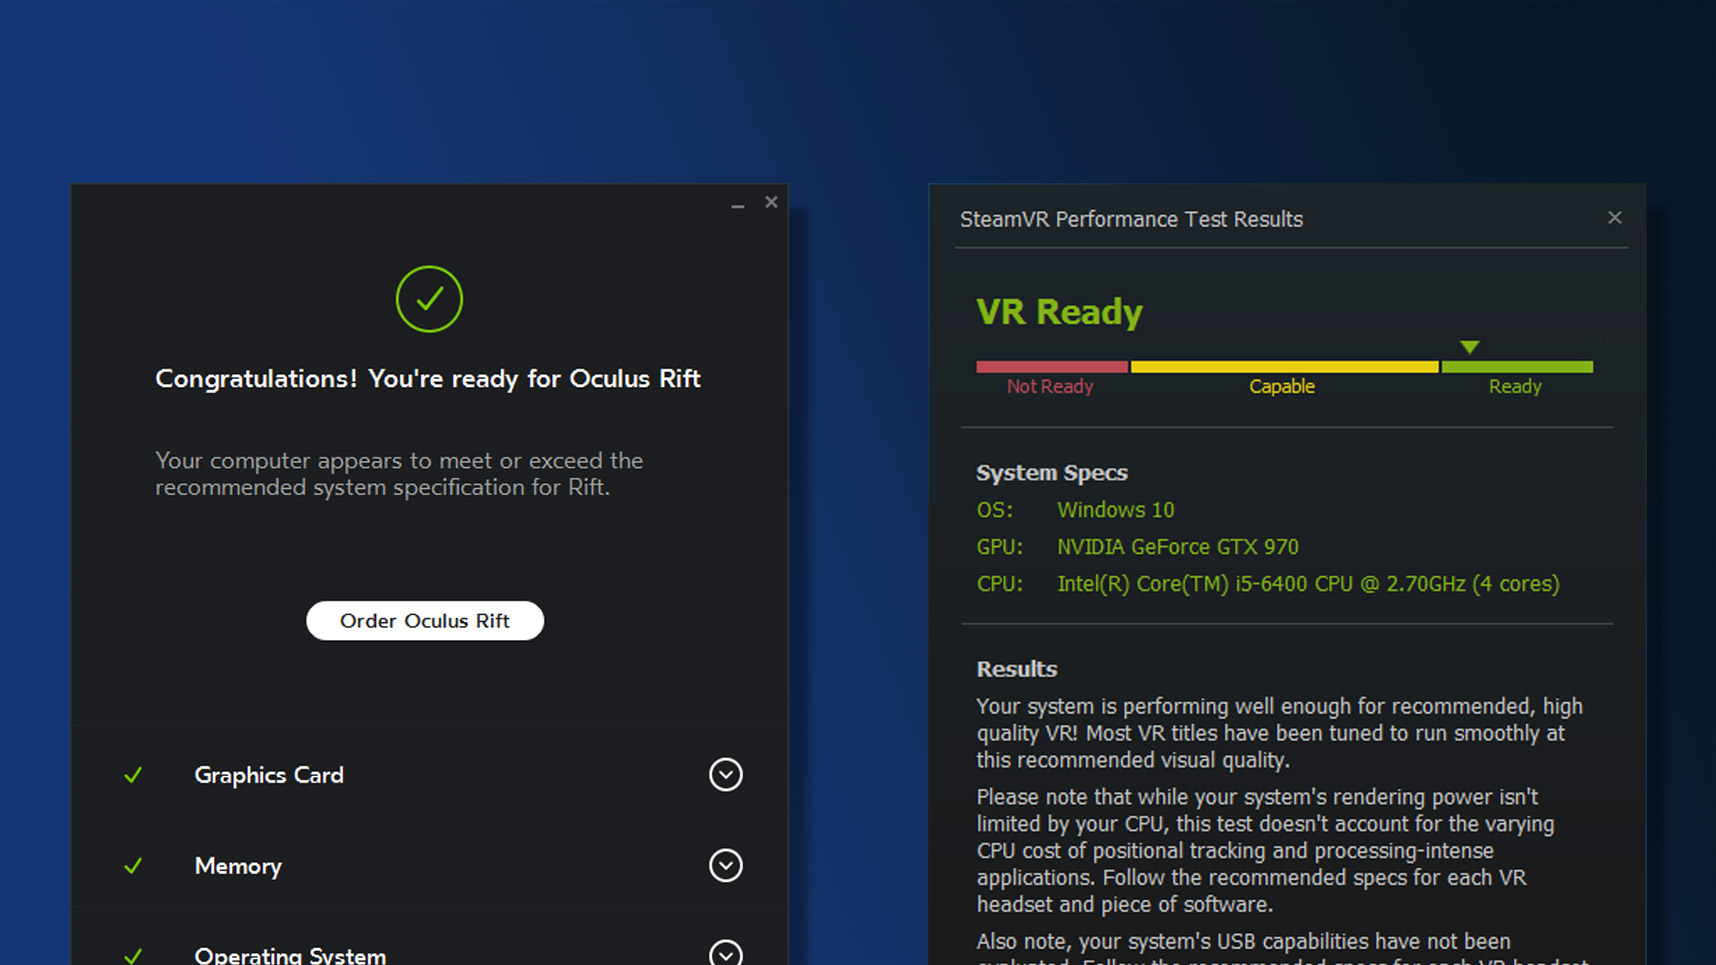 Check if Your PC is VR Ready for Oculus Rift, HTC Vive, and